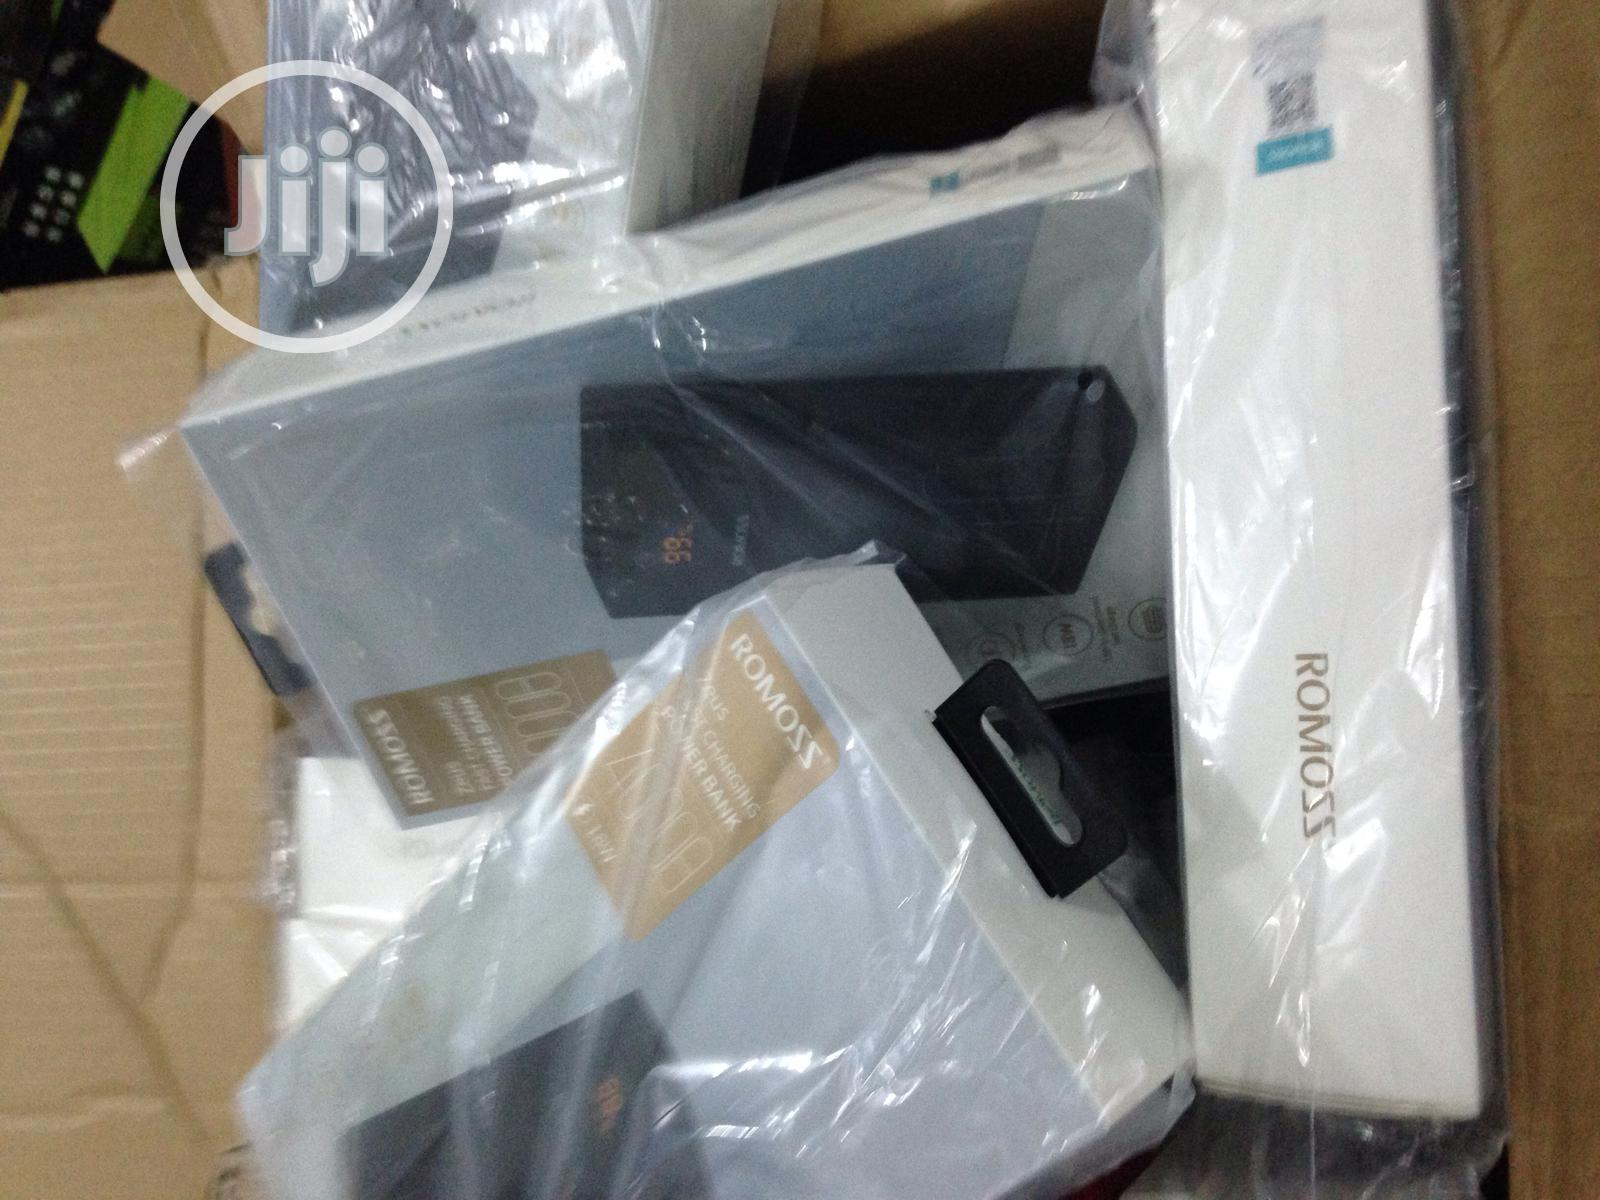 40000mah Romoss Power Bank | Accessories for Mobile Phones & Tablets for sale in Egbeda, Oyo State, Nigeria